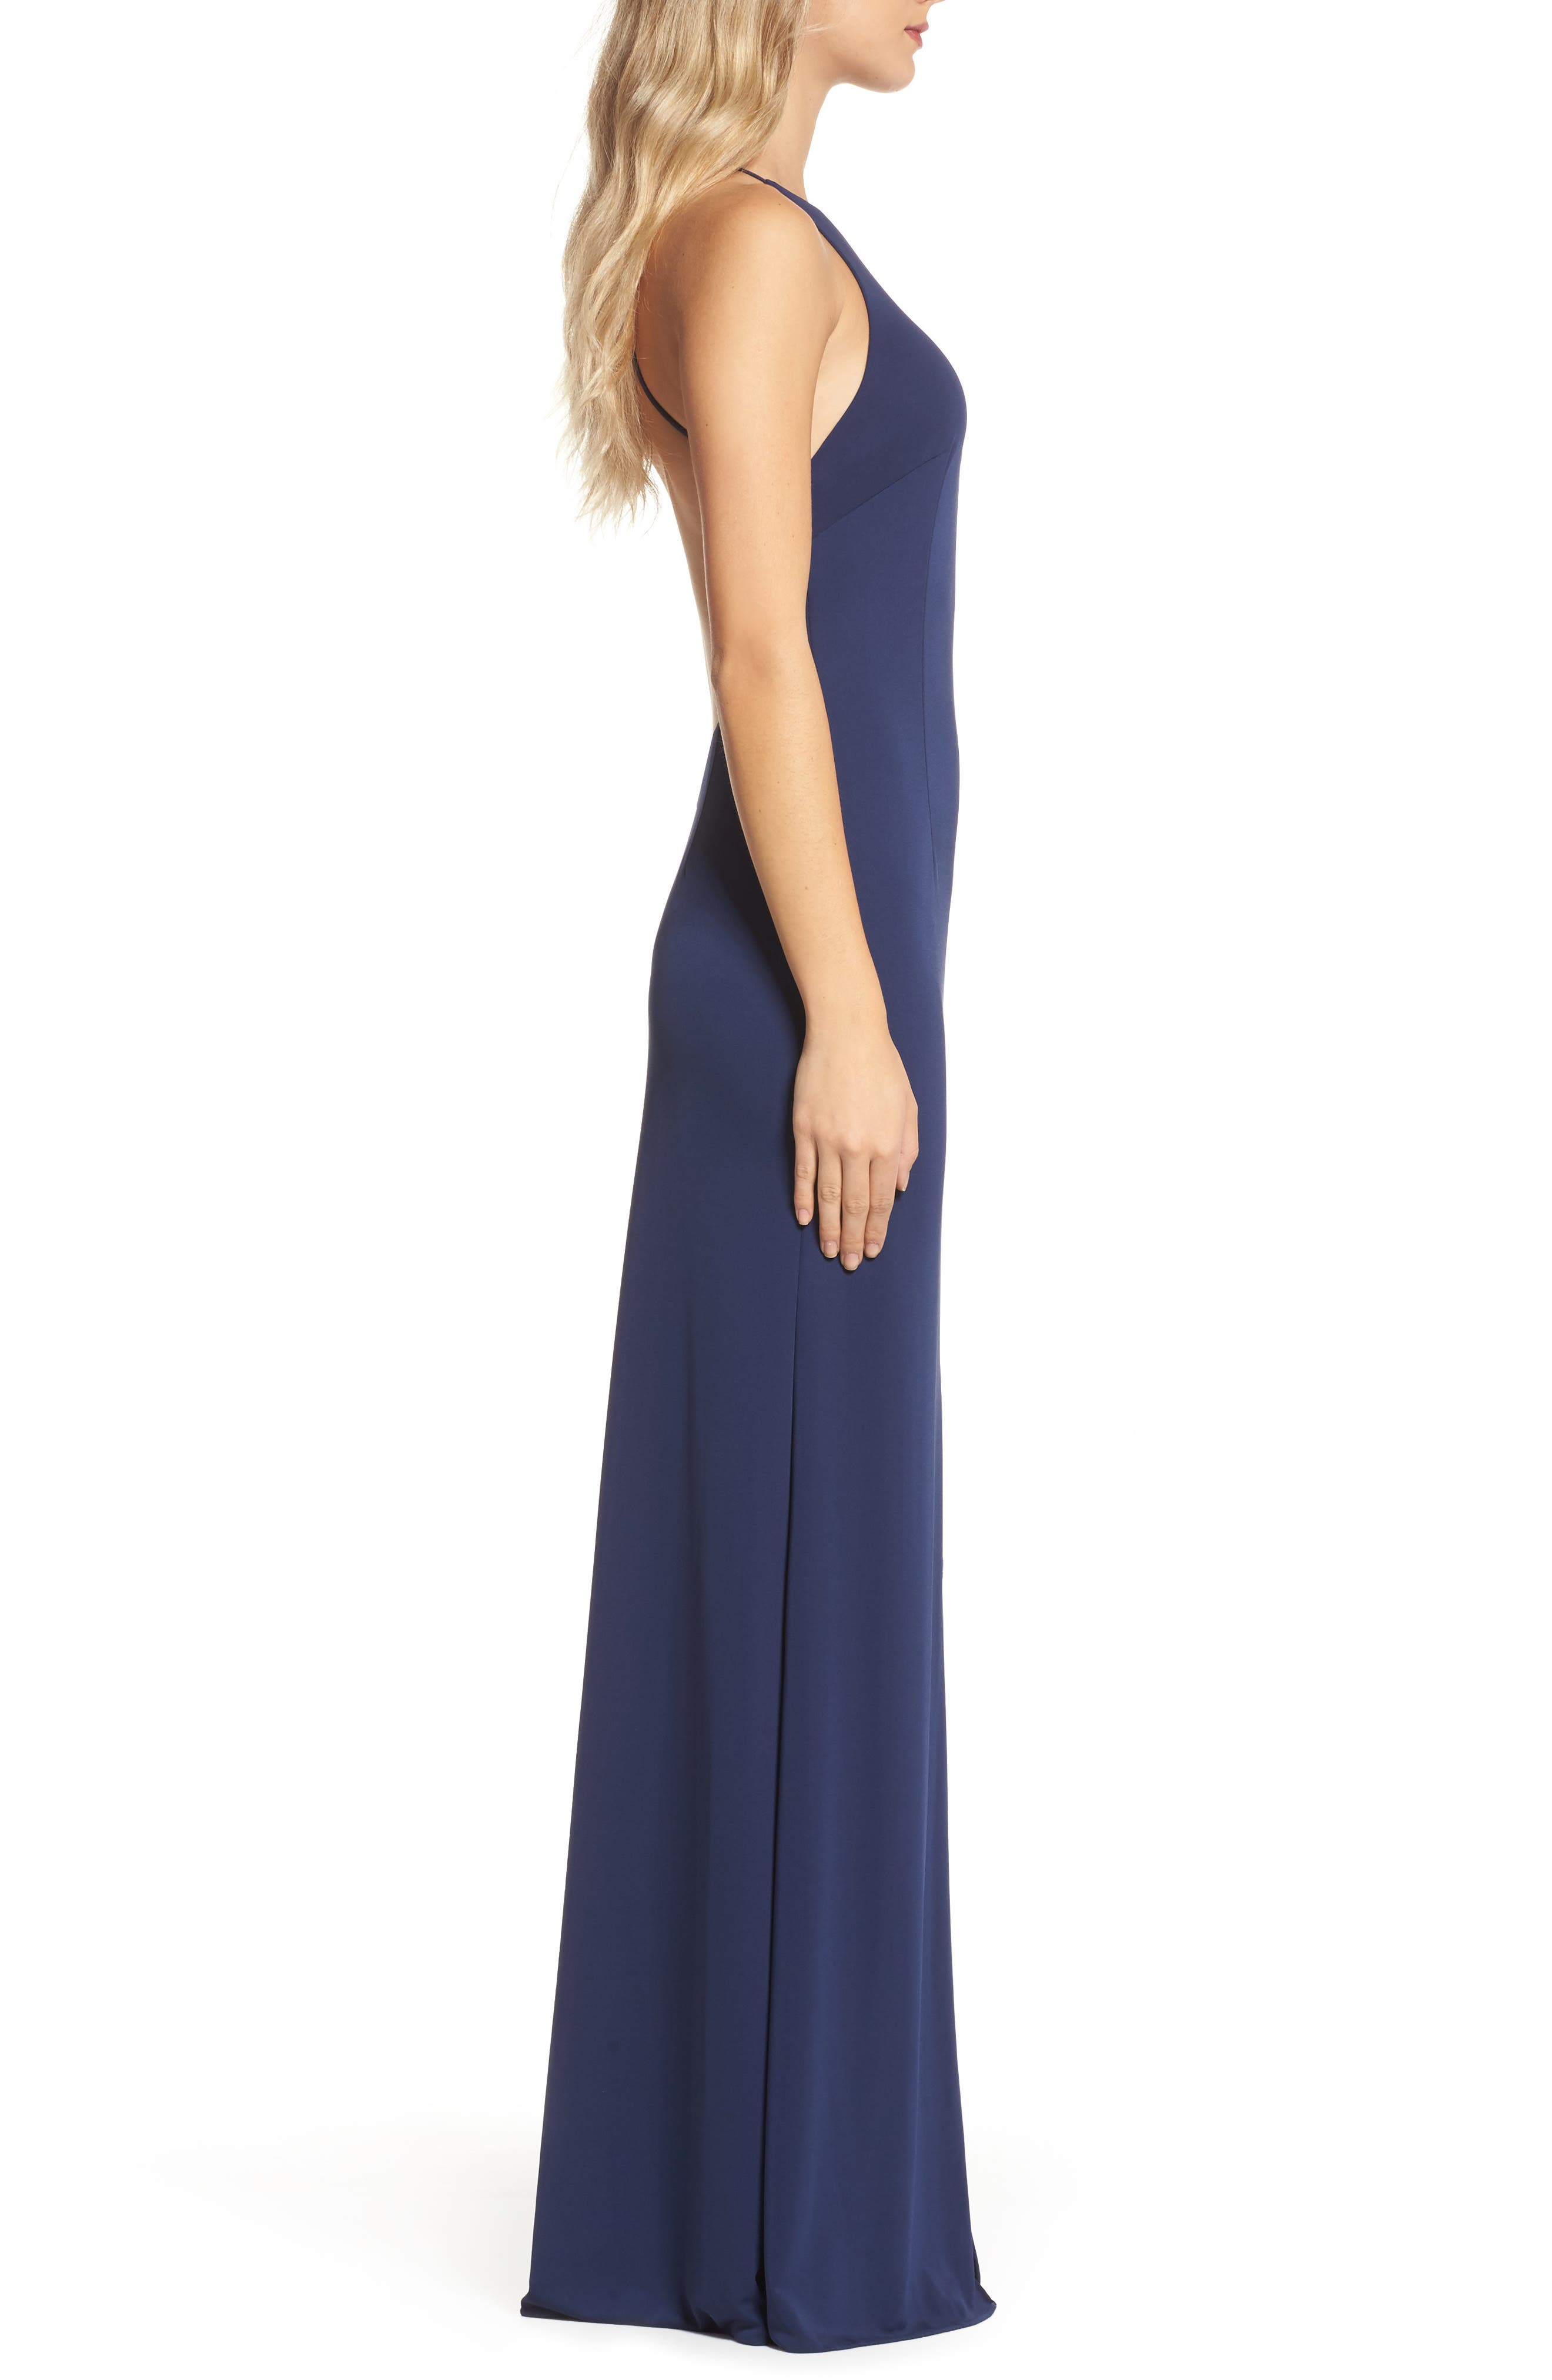 Victoria Sleeveless Gown,                             Alternate thumbnail 3, color,                             411